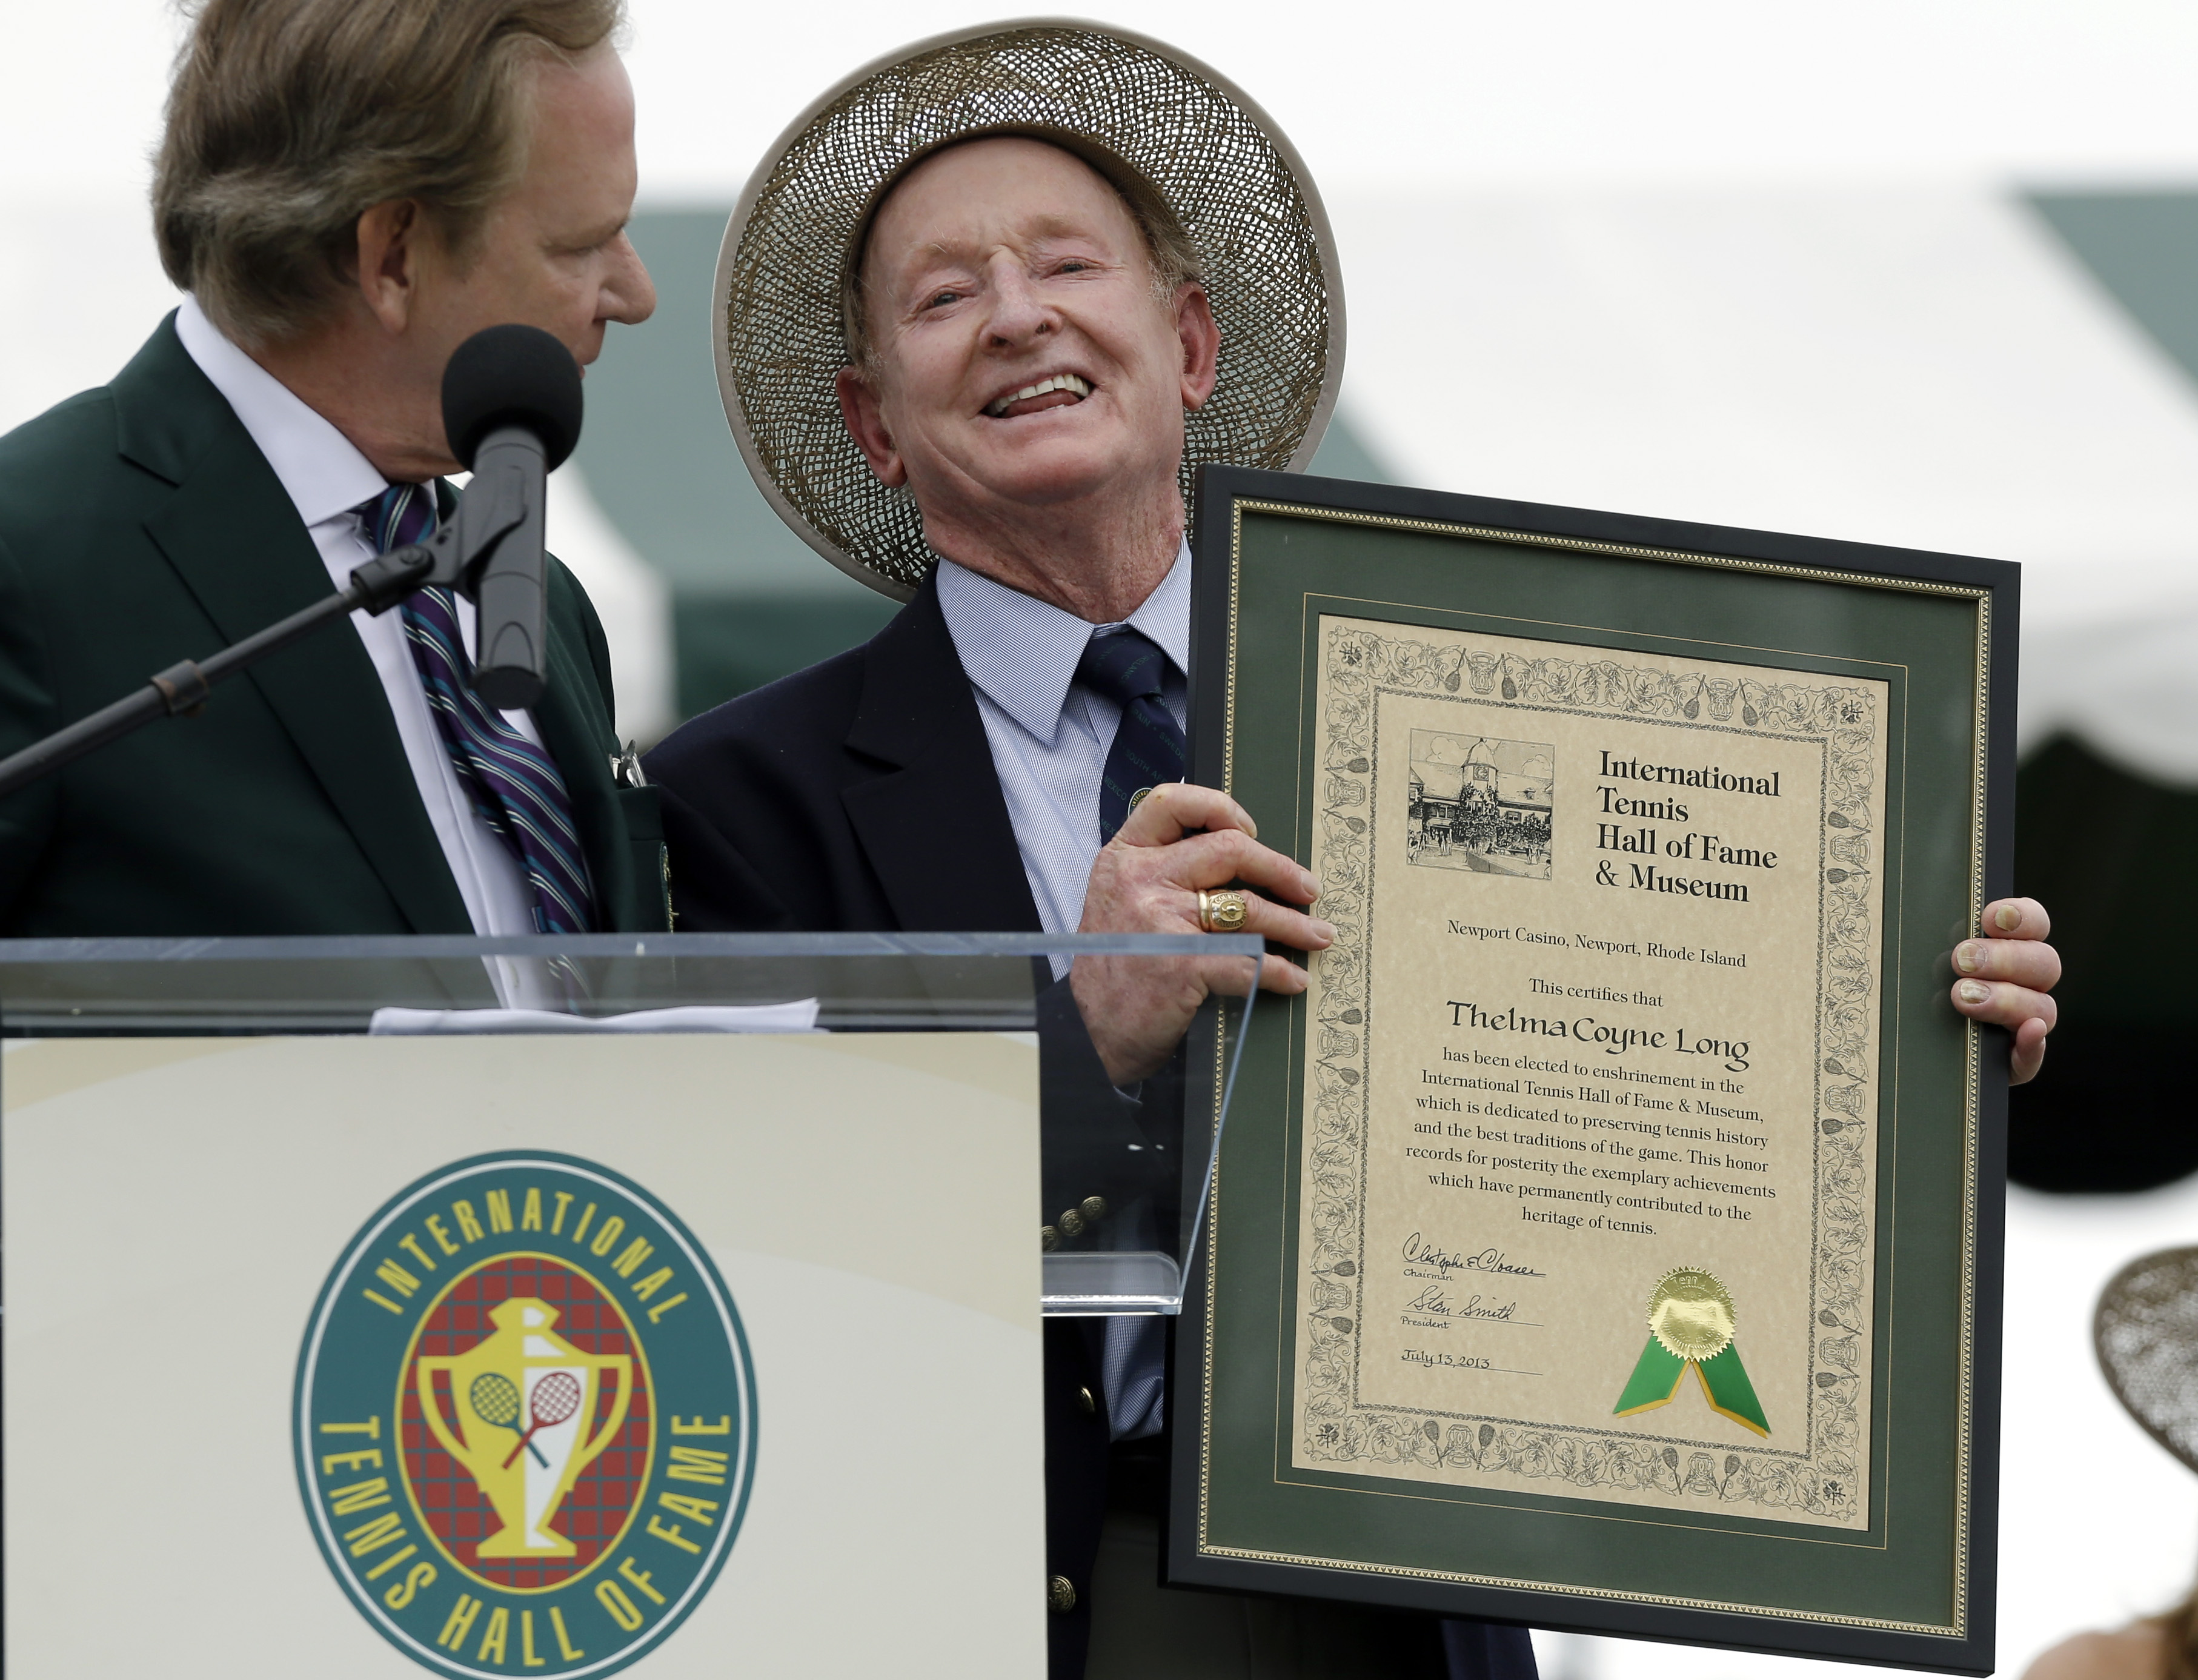 Tennis Hall of Famer Rod Laver, of Australia, accepts the enshrinement certificate for master player Thelma Coyne Long, 94, of Australia, who could not be there in person for her induction into the International Tennis Hall of Fame in Newport, R.I. Saturd